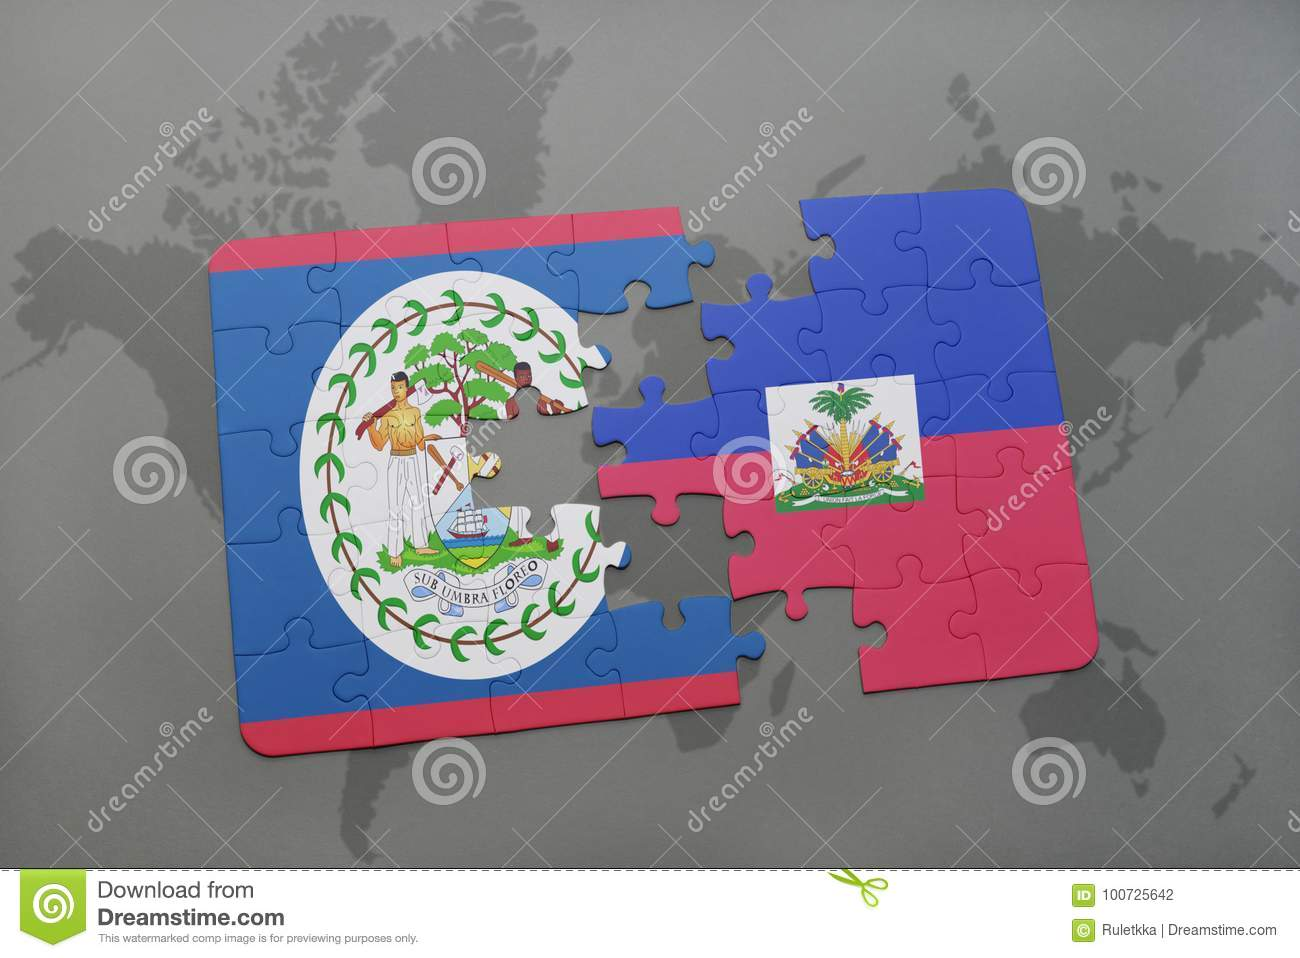 Puzzle with the national flag of belize and haiti on a world map puzzle with the national flag of belize and haiti on a world map background 3d illustration gumiabroncs Choice Image